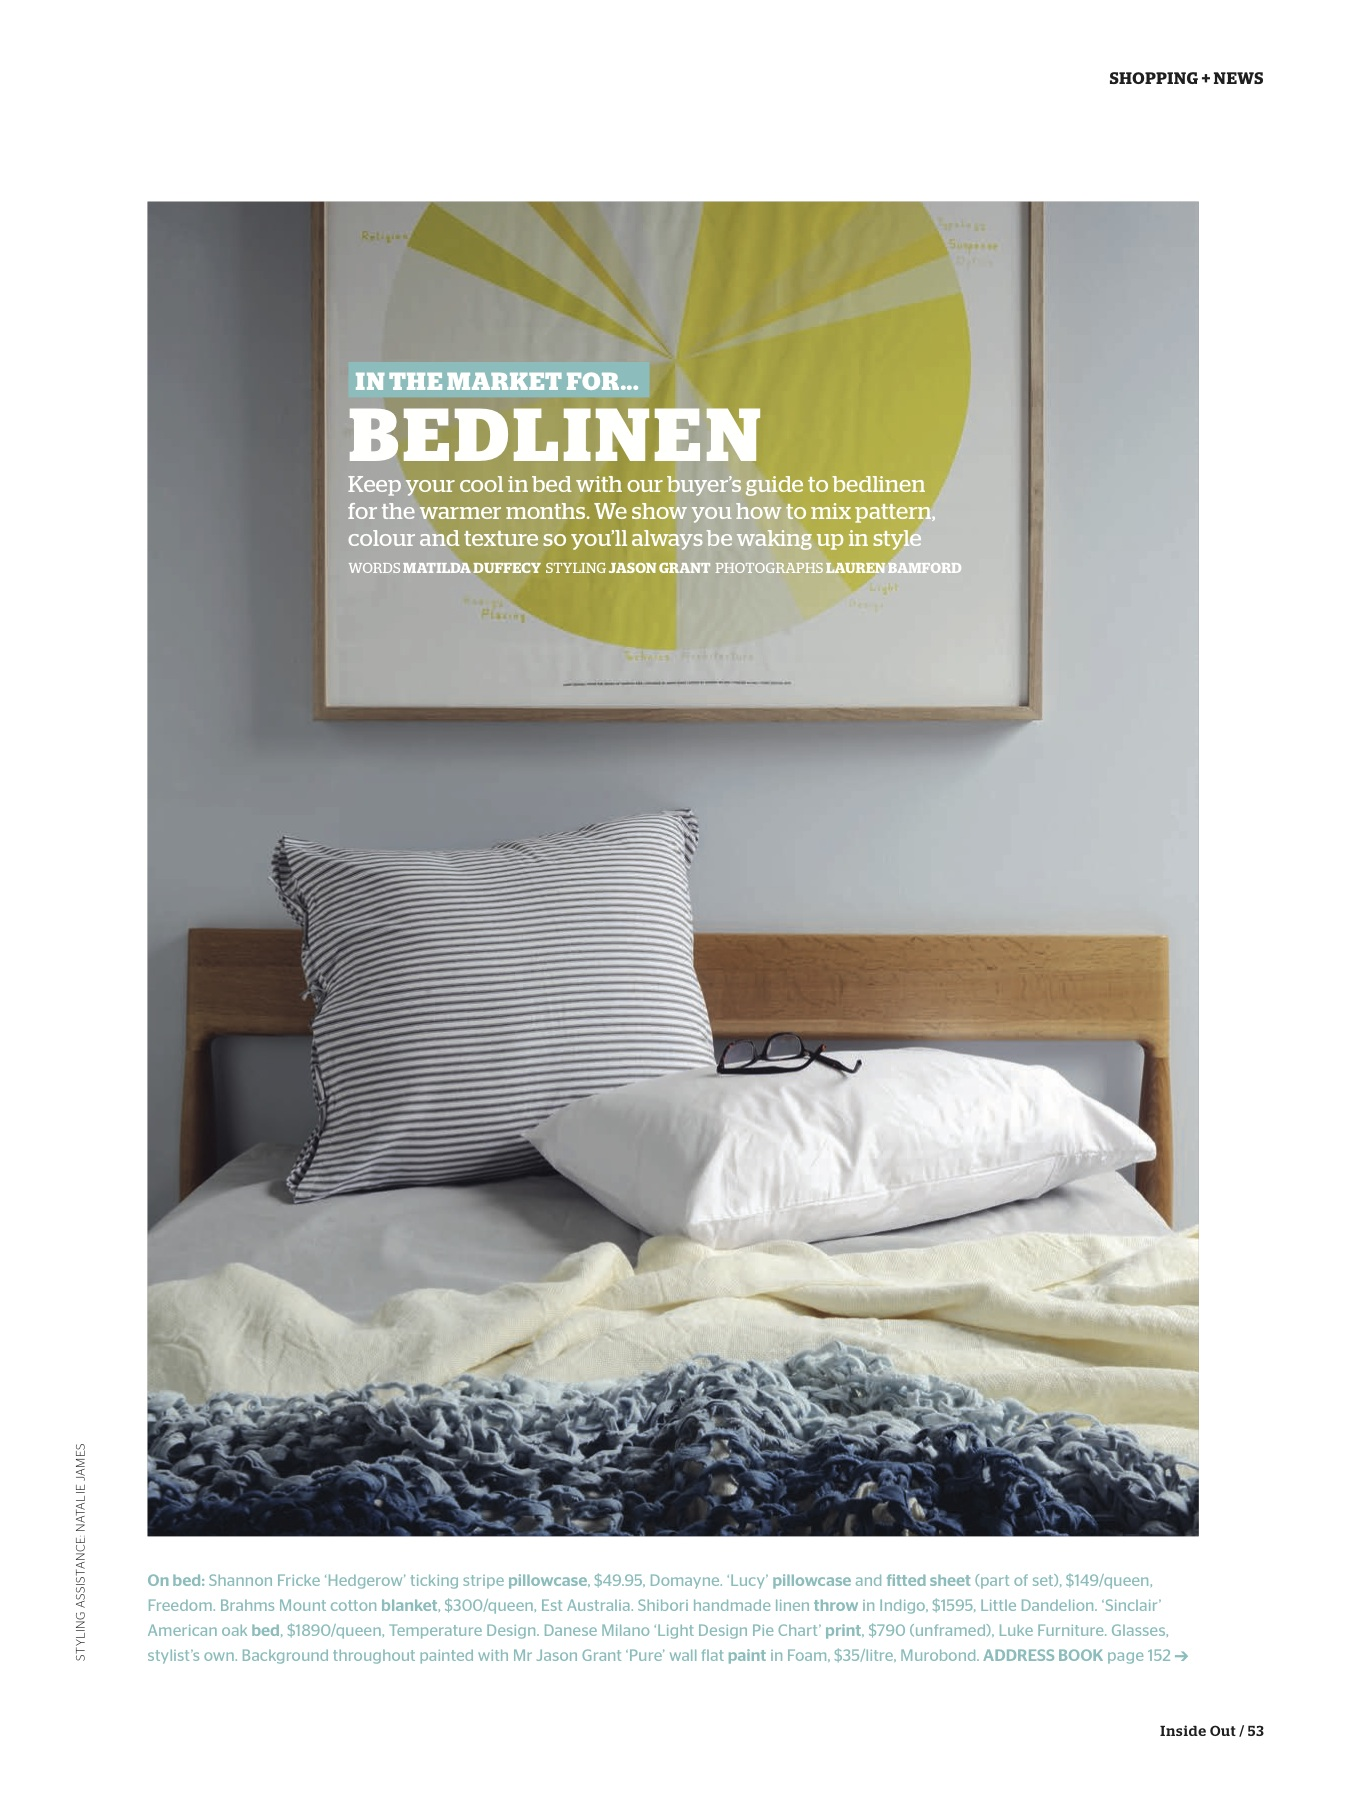 Inside Out Magazine January Issue Bed Linen Feature as styled by Mr Jason Grant